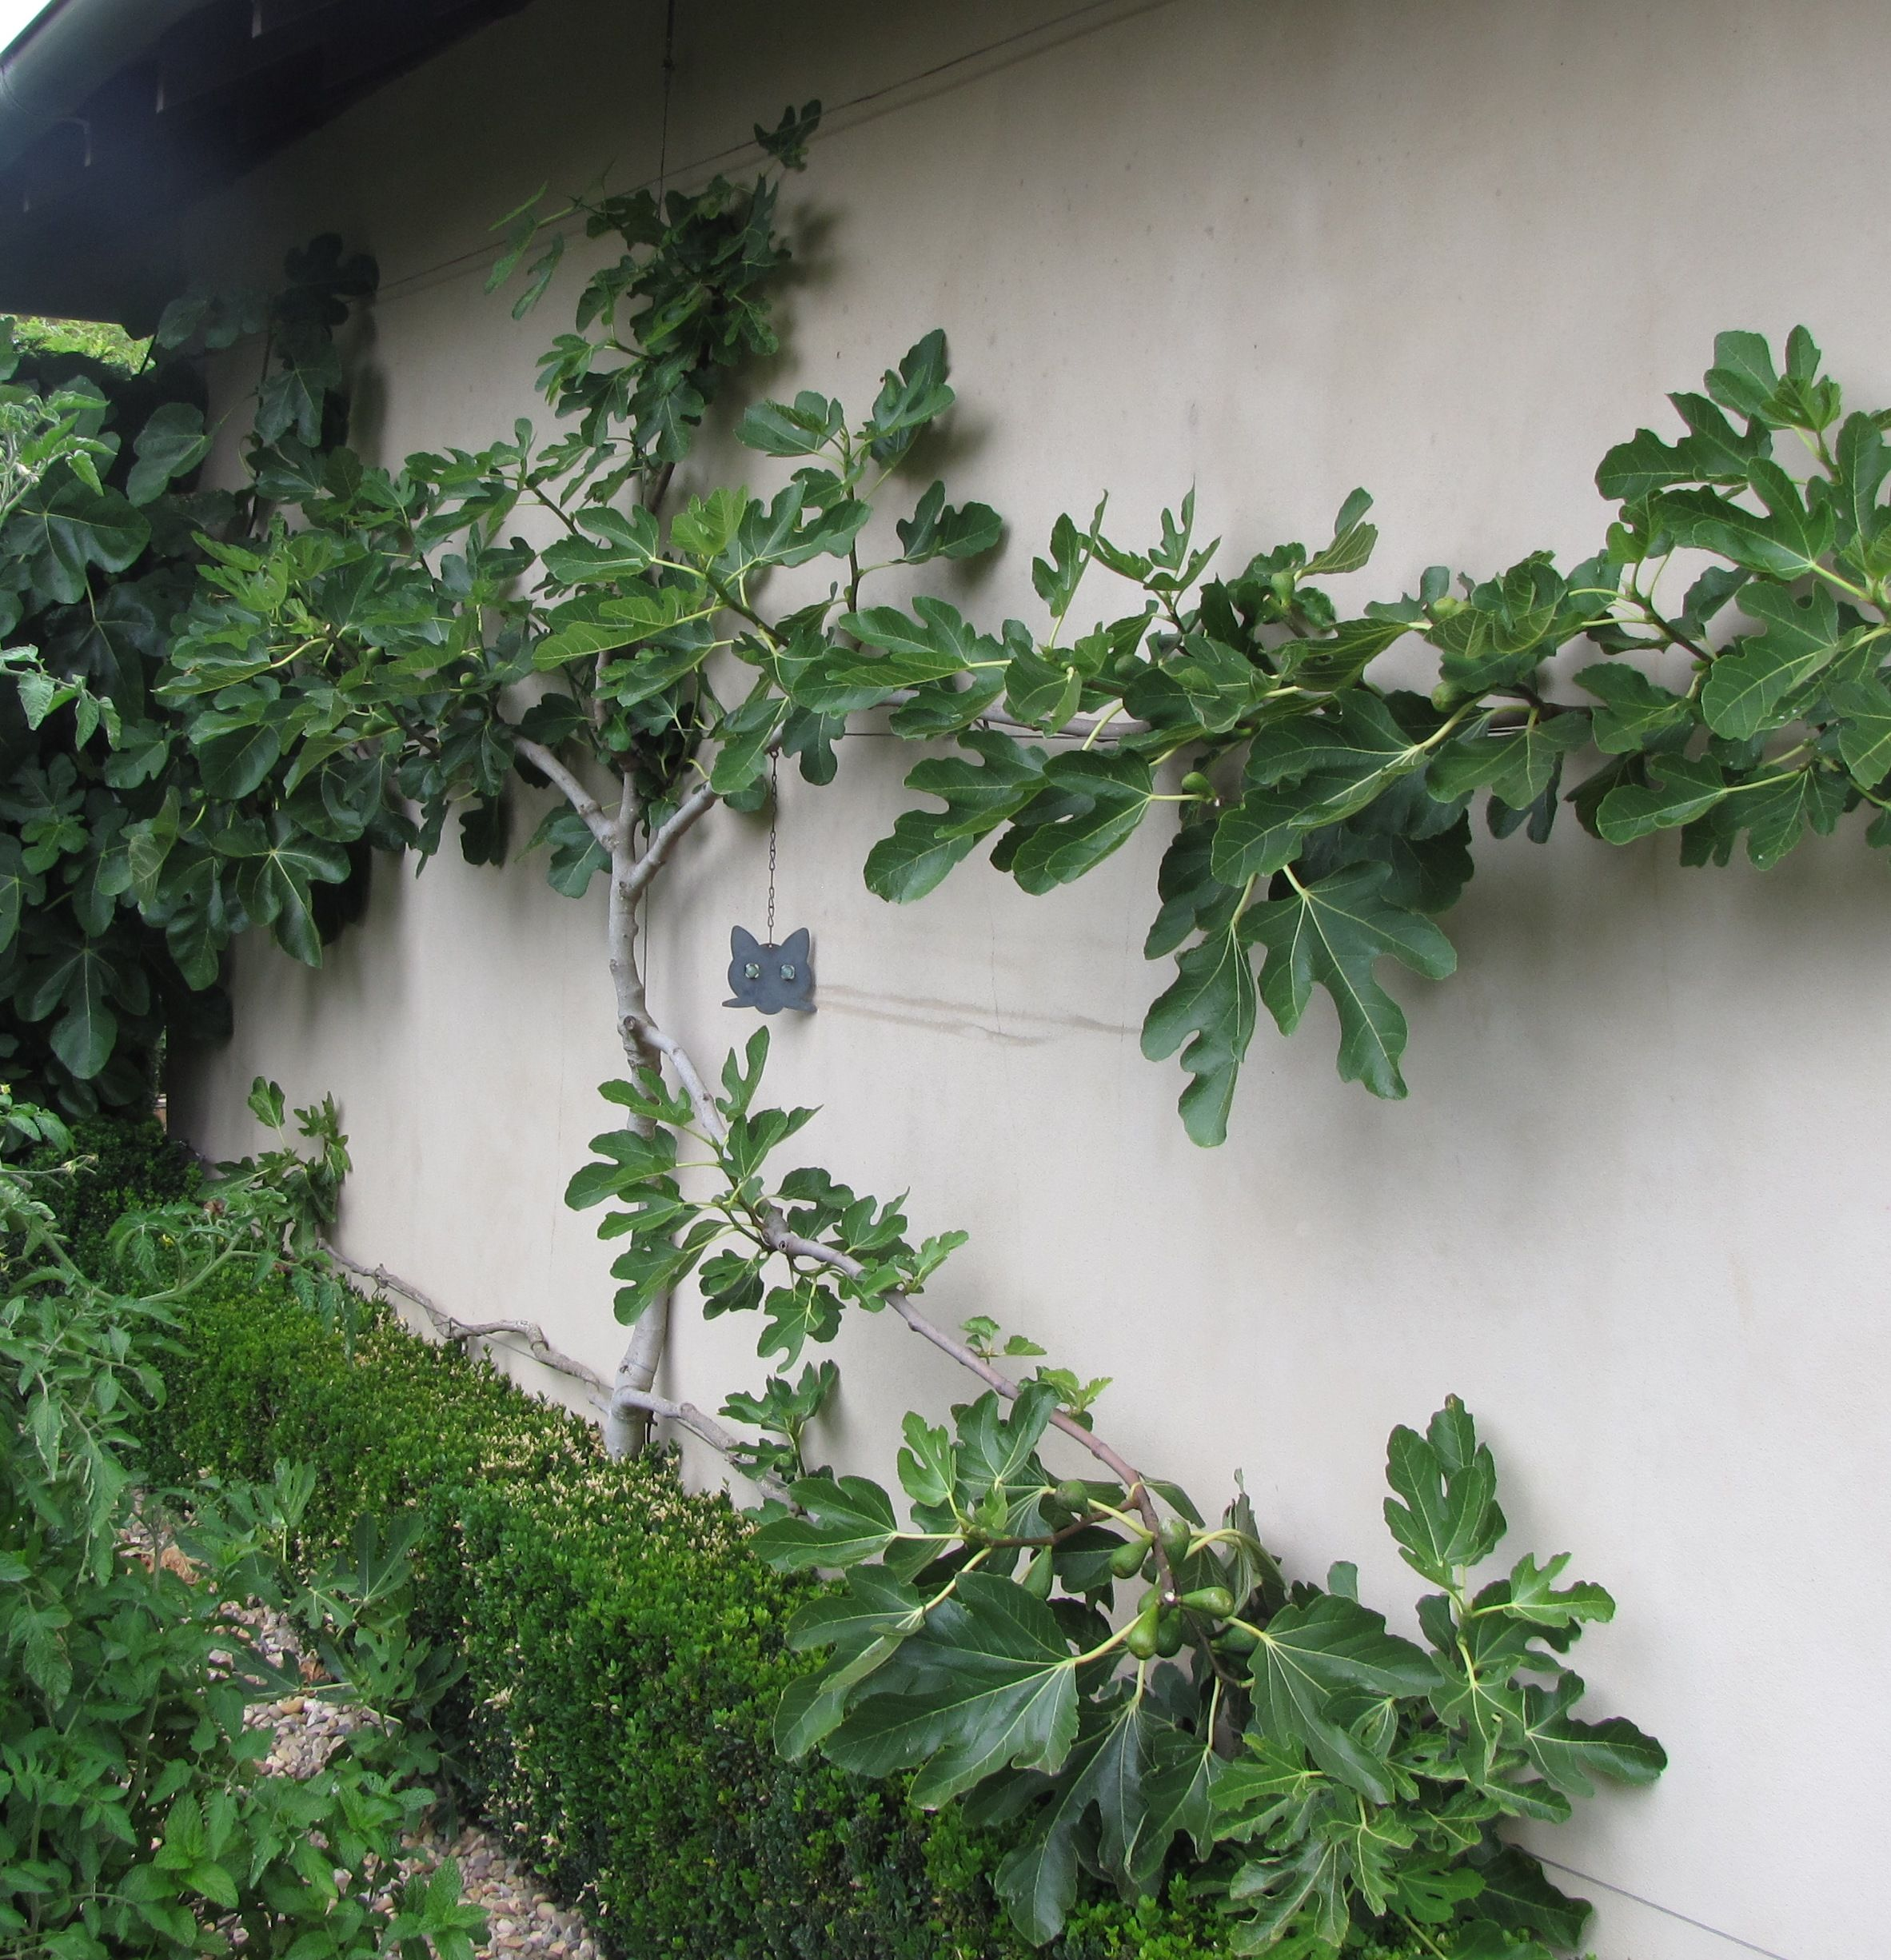 Espaliered Fig Tree Wish My Had So Much Fruit Only 1 This Year Was Rather Yummy Though